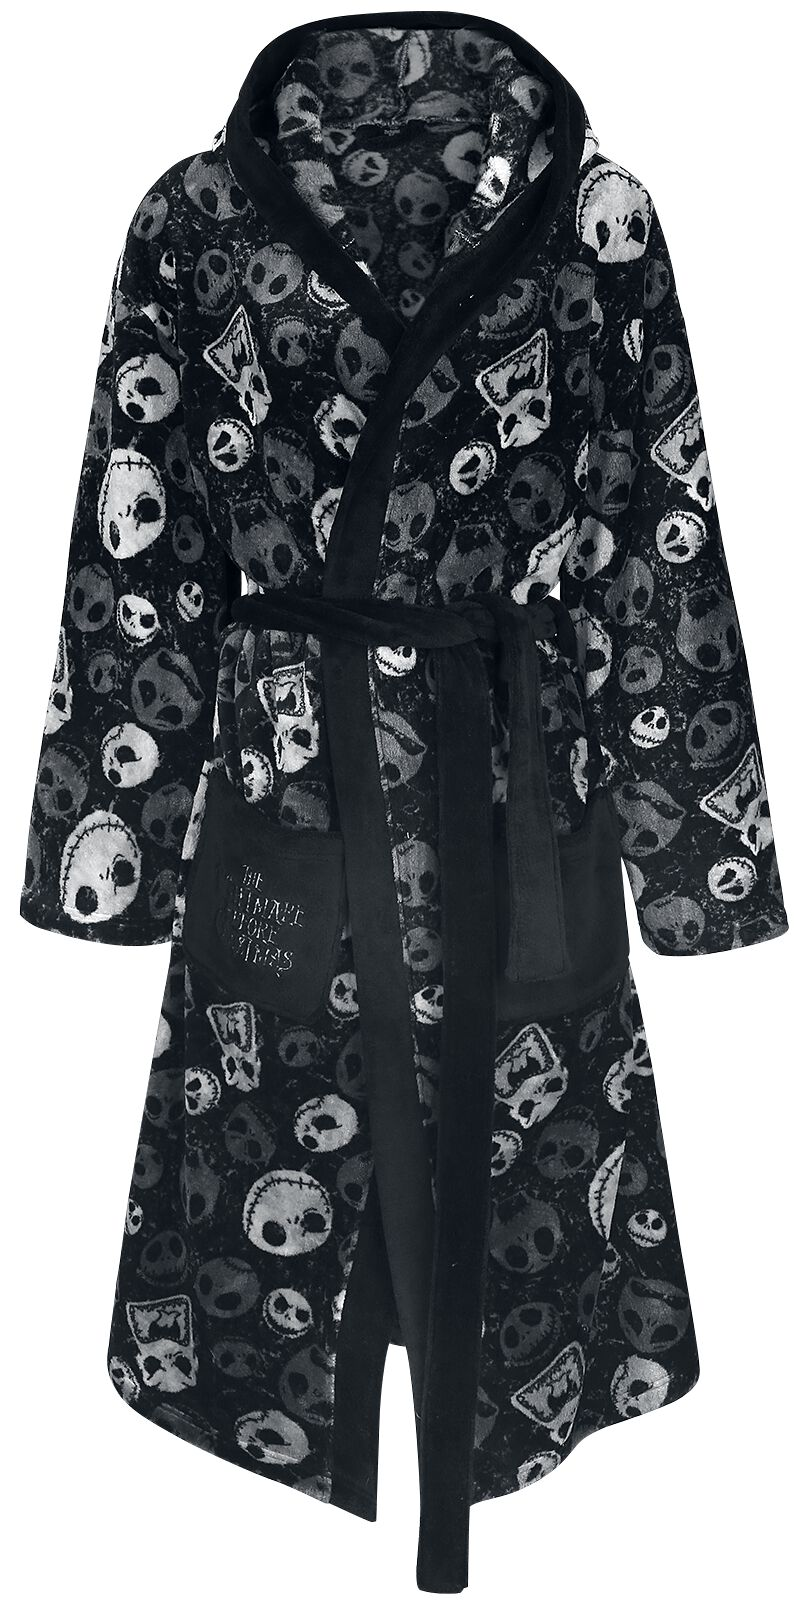 Classic Skull | The Nightmare Before Christmas Bathrobe | EMP